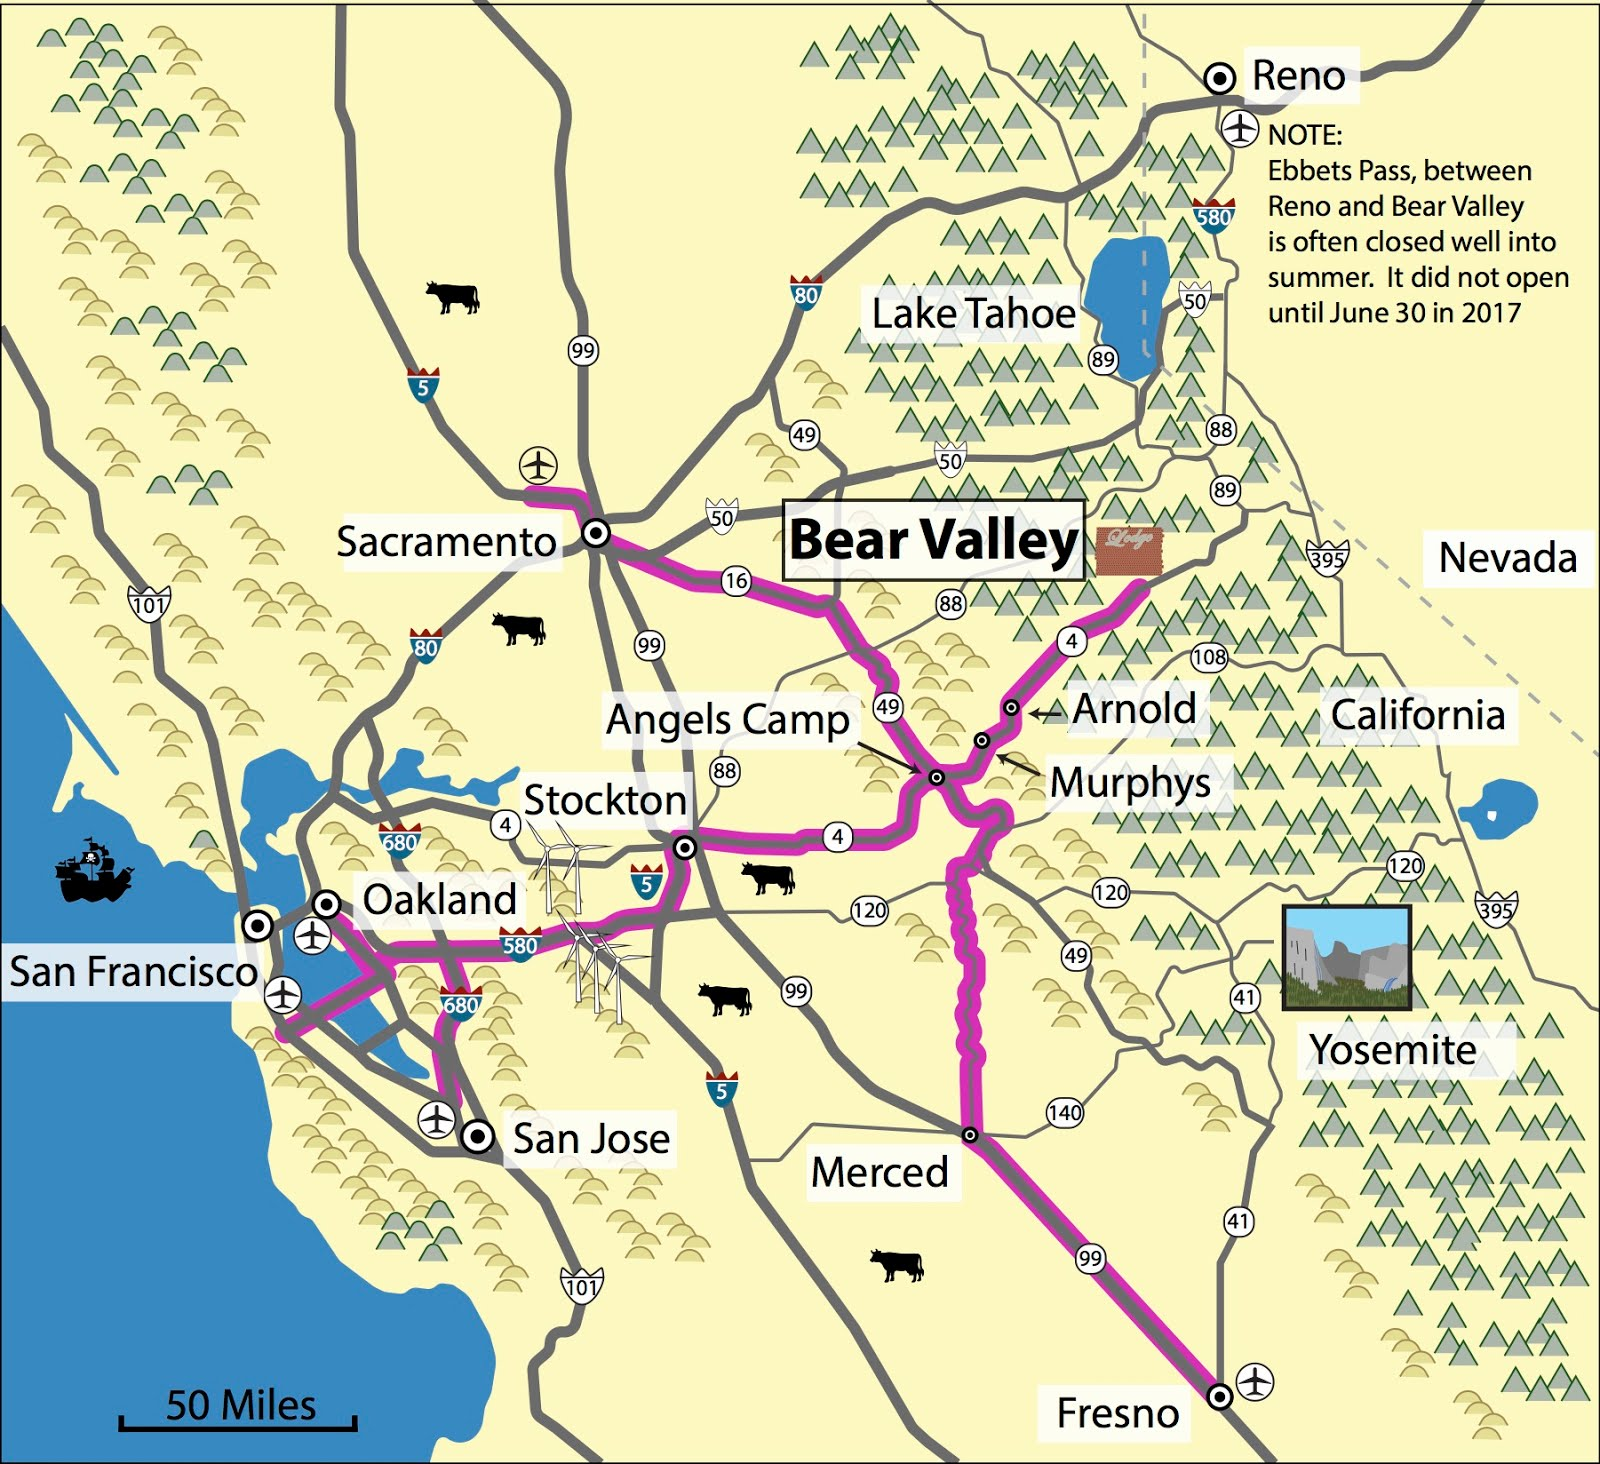 suggested routes to bear valley